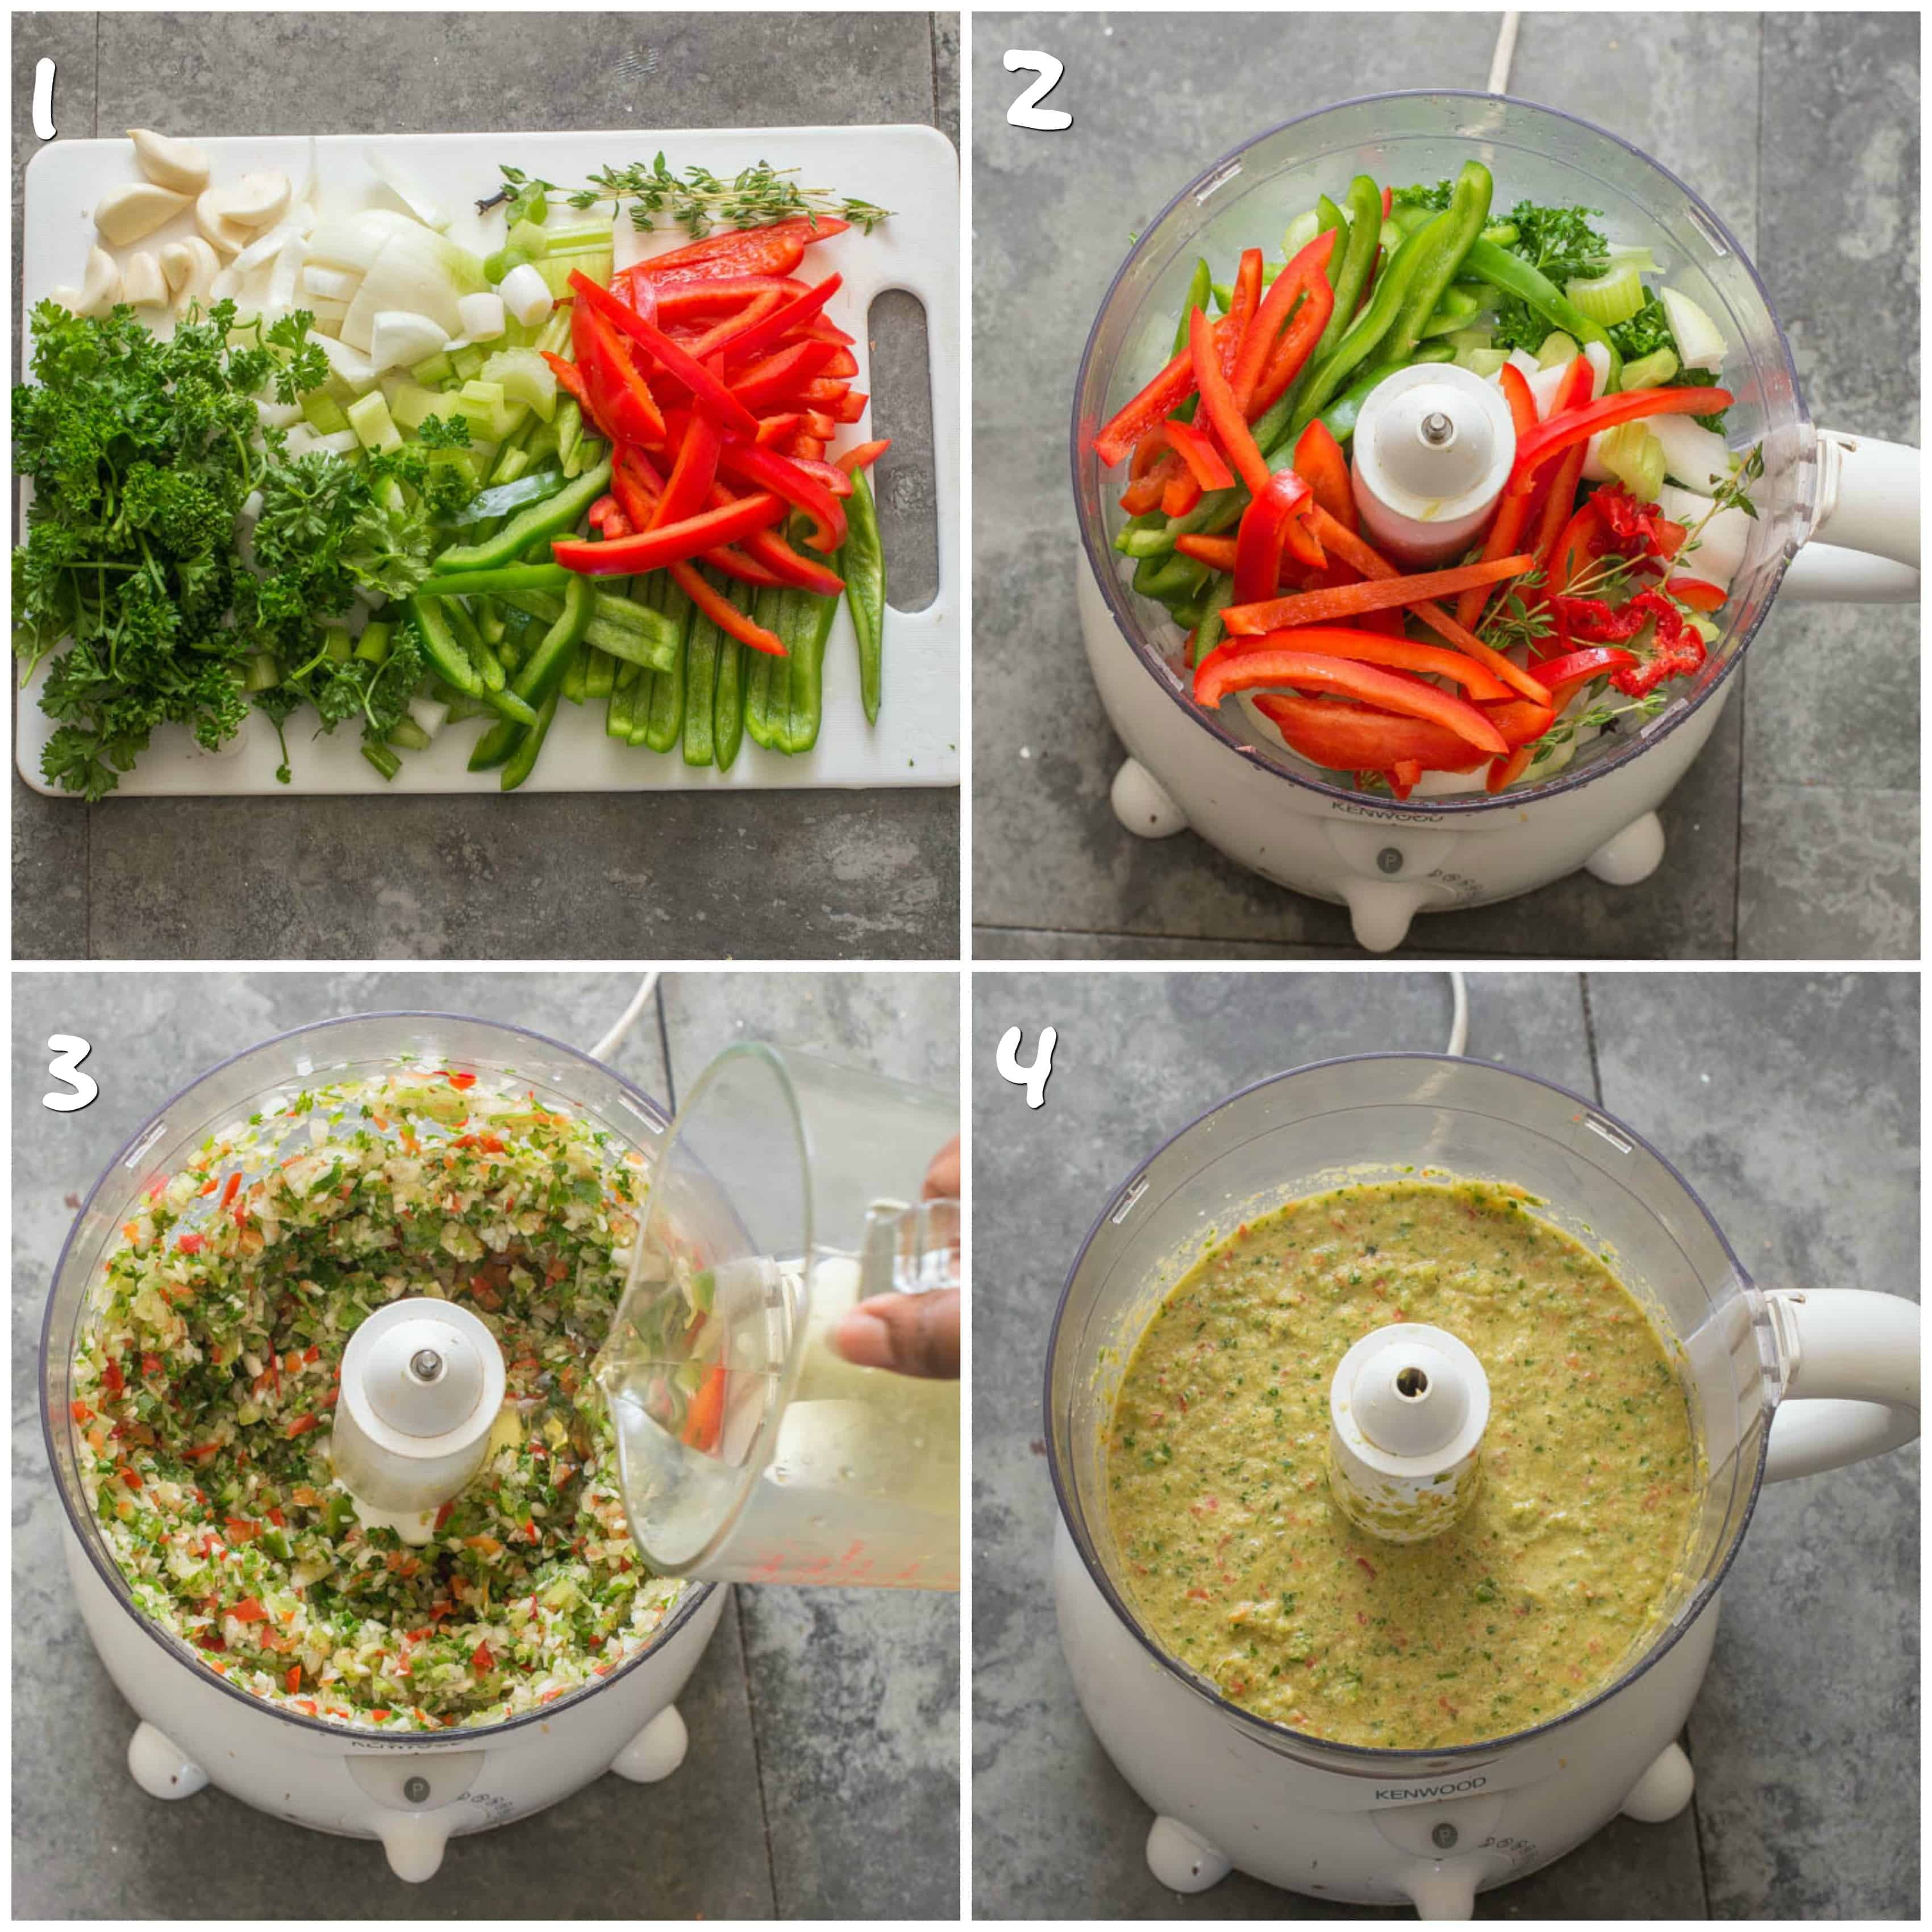 Pureeing the vegetables in a food processor to make epis